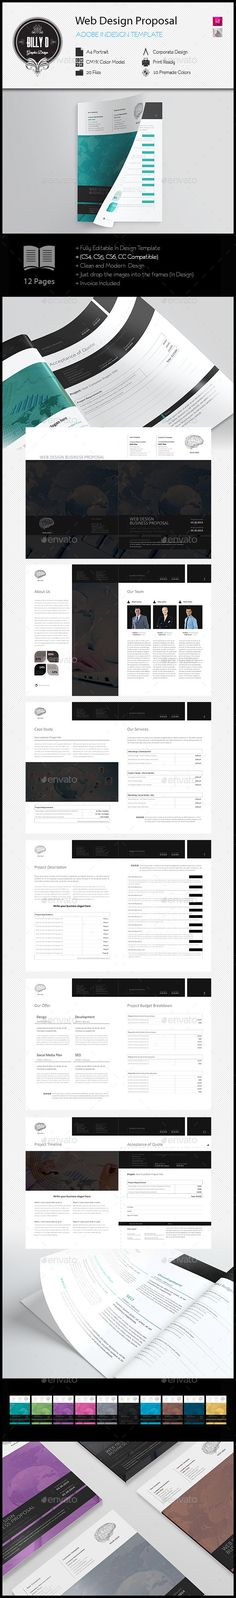 Web Design Proposal Template | Proposal templates, Proposals and ...